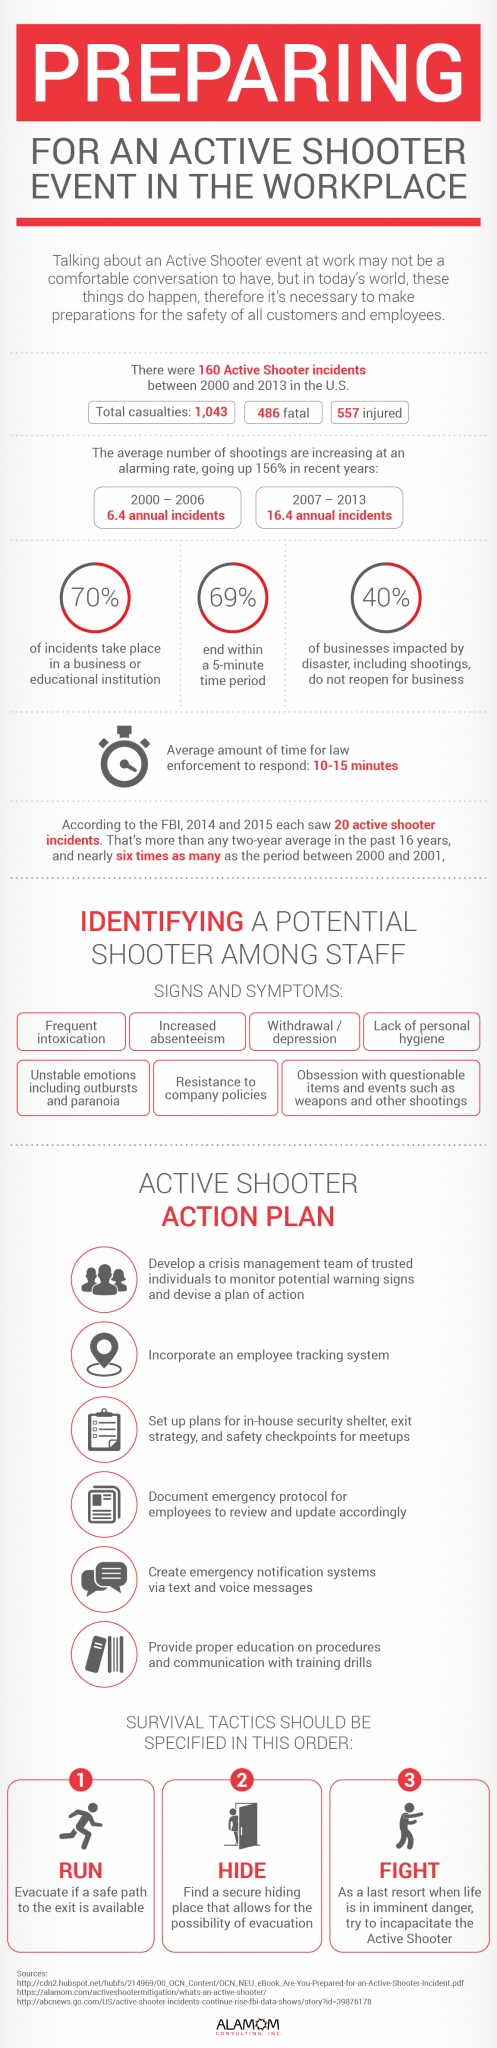 Preparing for an Active Shooter in the Workplace